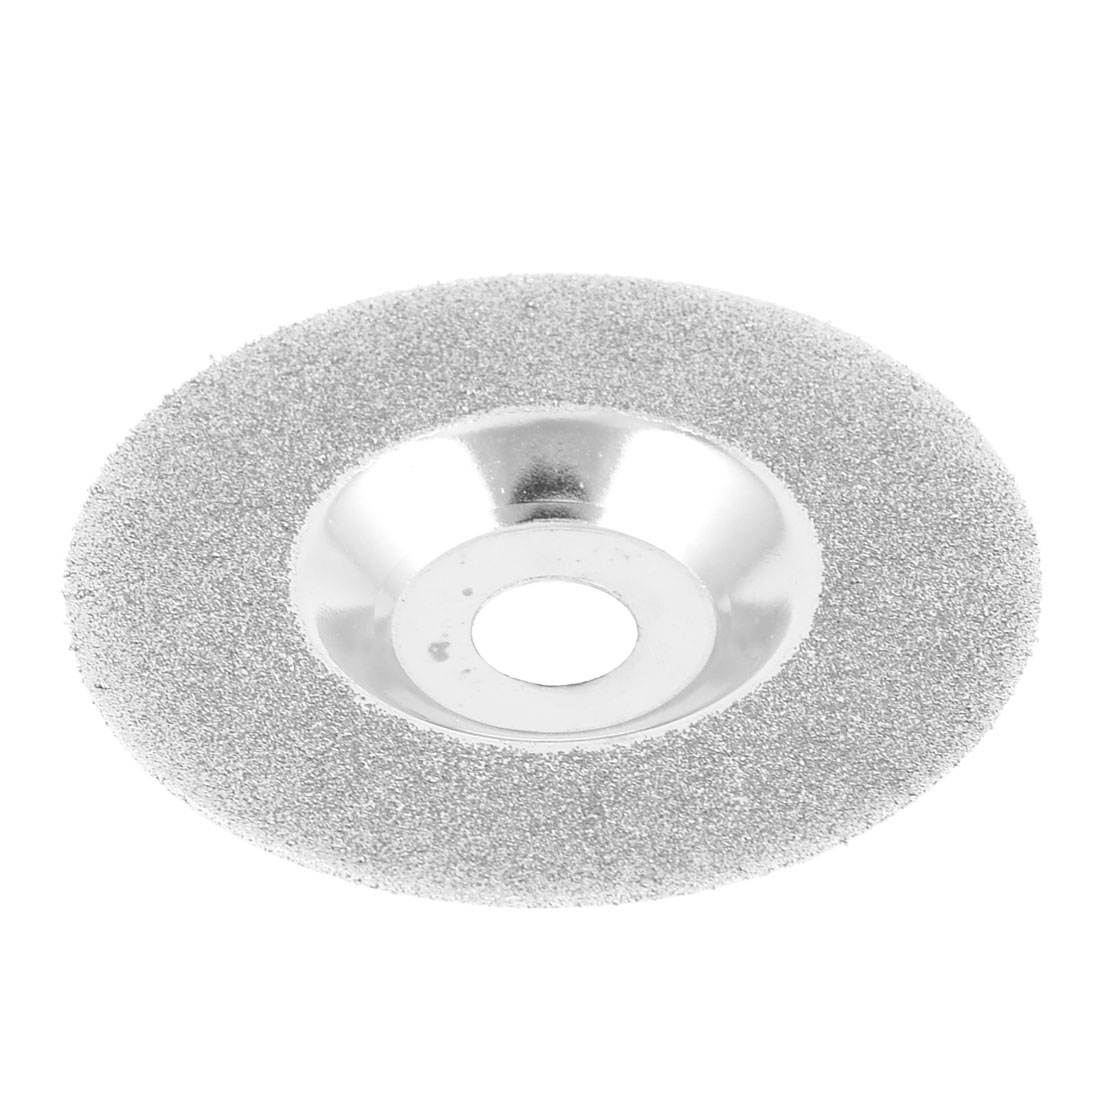 Tile Stone Diamond Cutting Disc Saw Slice 98mm x 16mm x 0.8mm